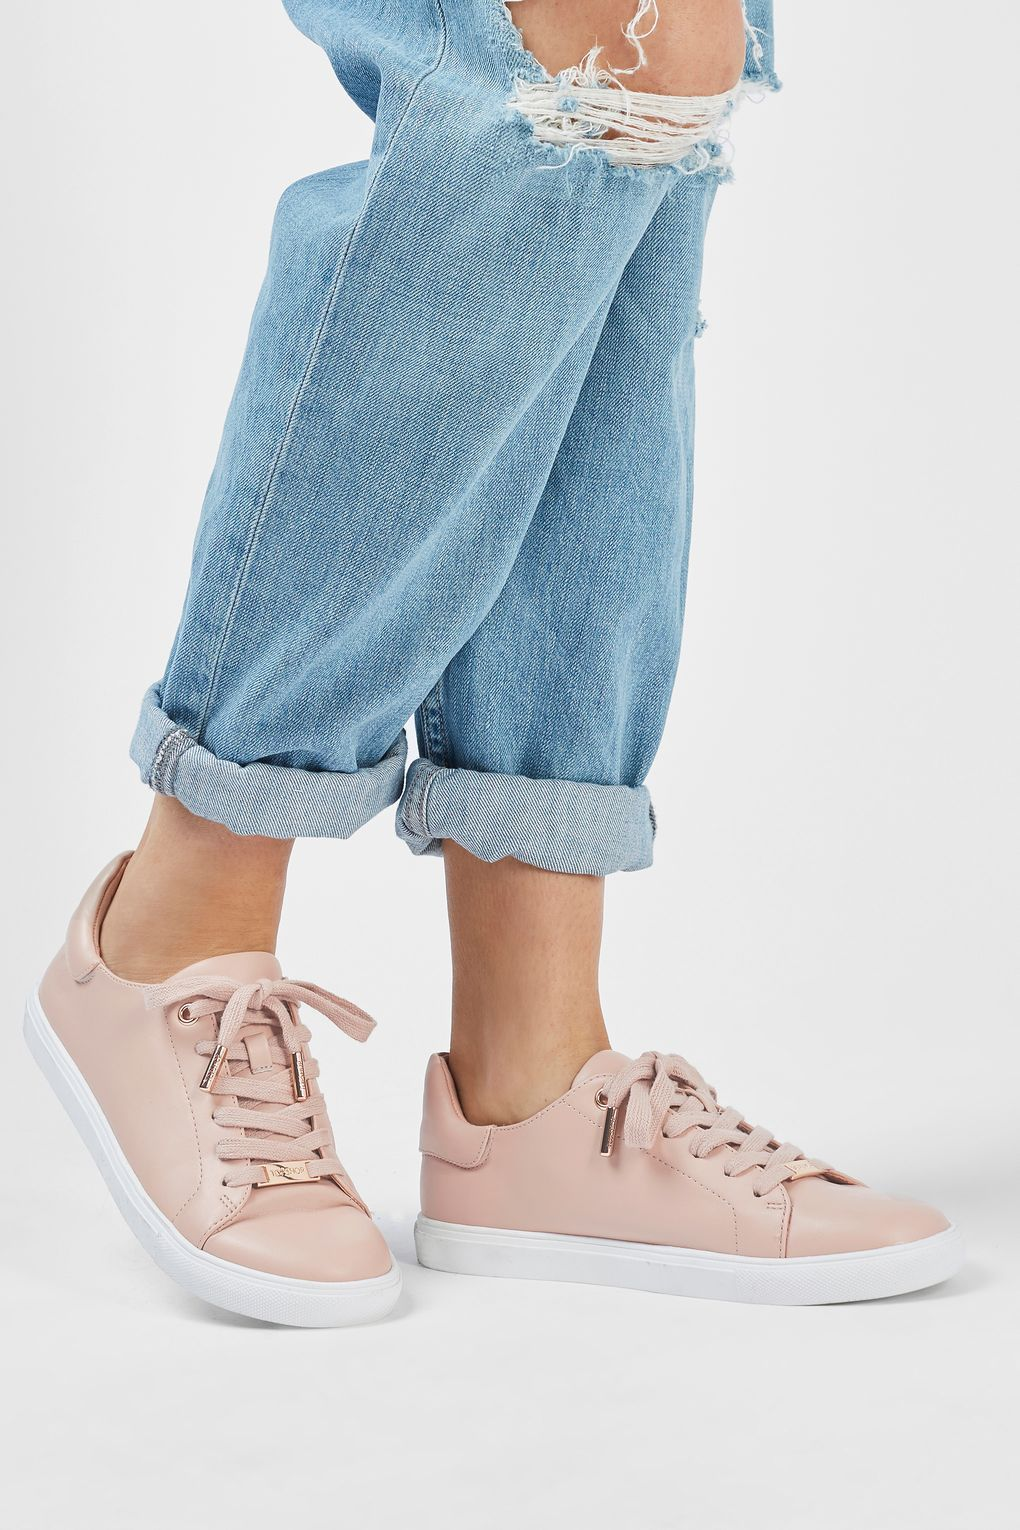 a80352f2ec8 CATSEYE2 Lace Up Trainers